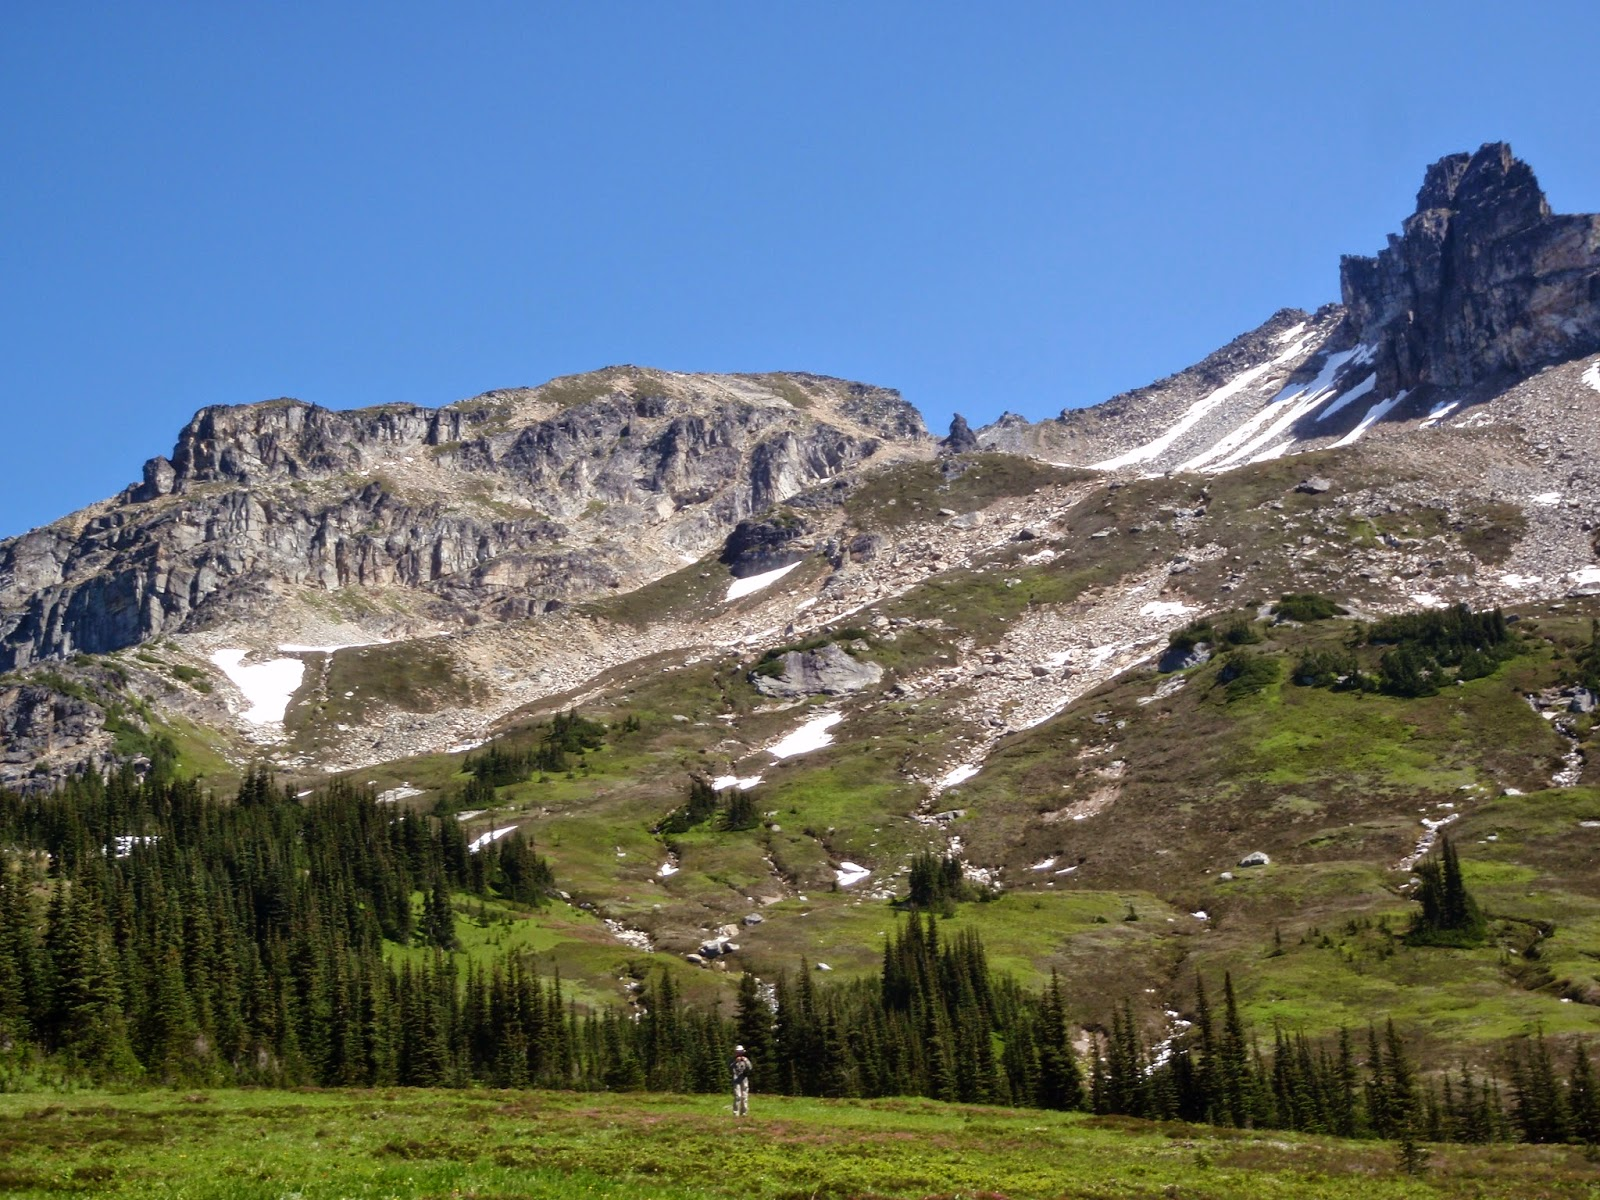 Side trip to another meadow of wildflowers and great views of the mountains around us. @ Glacier Peak Wilderness